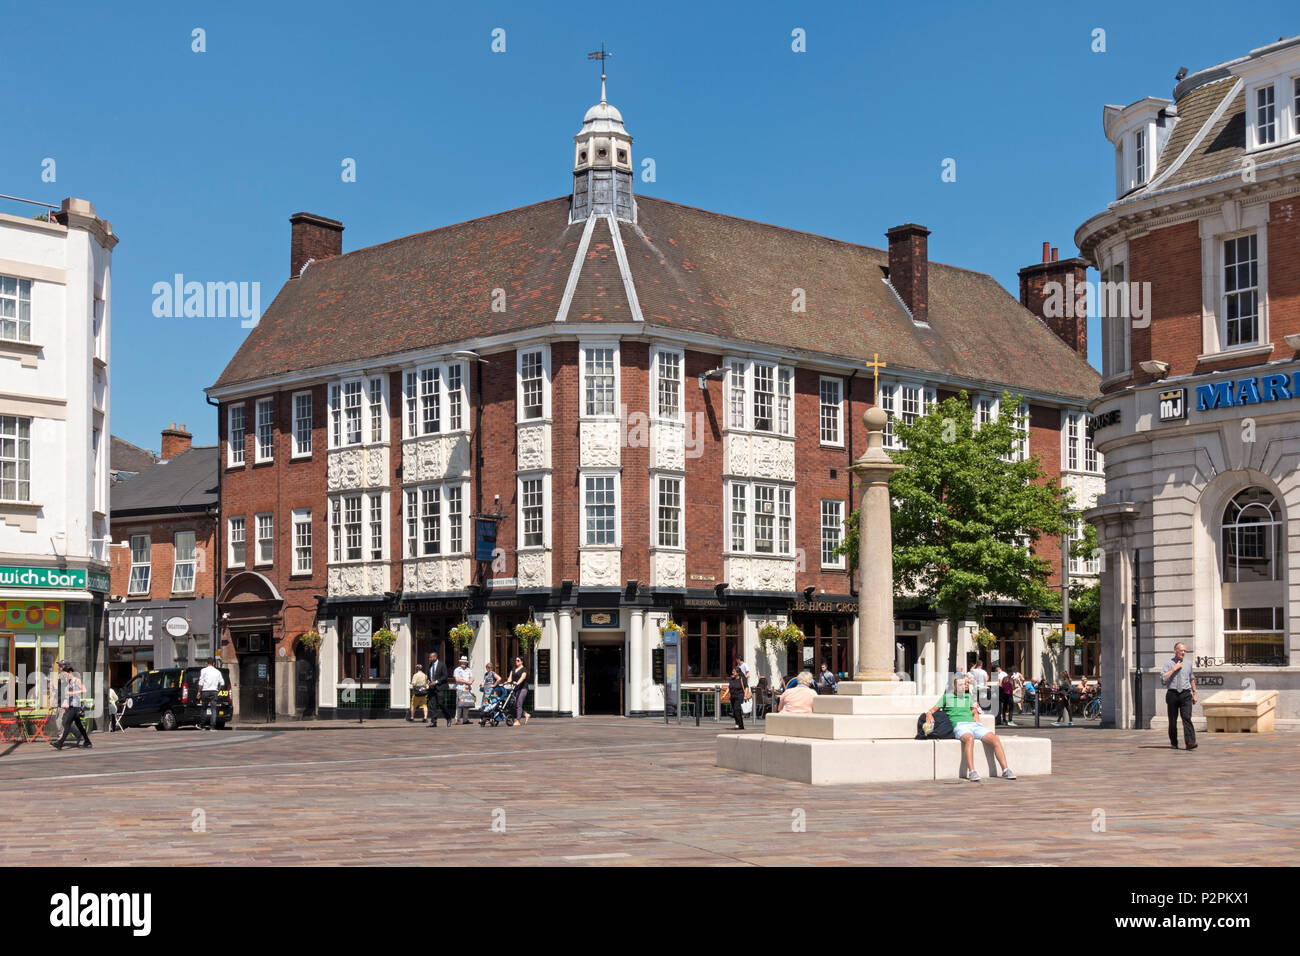 'The High Cross' Wetherspoons public house, Jubilee Square, Leicester, England, UK. - Stock Image